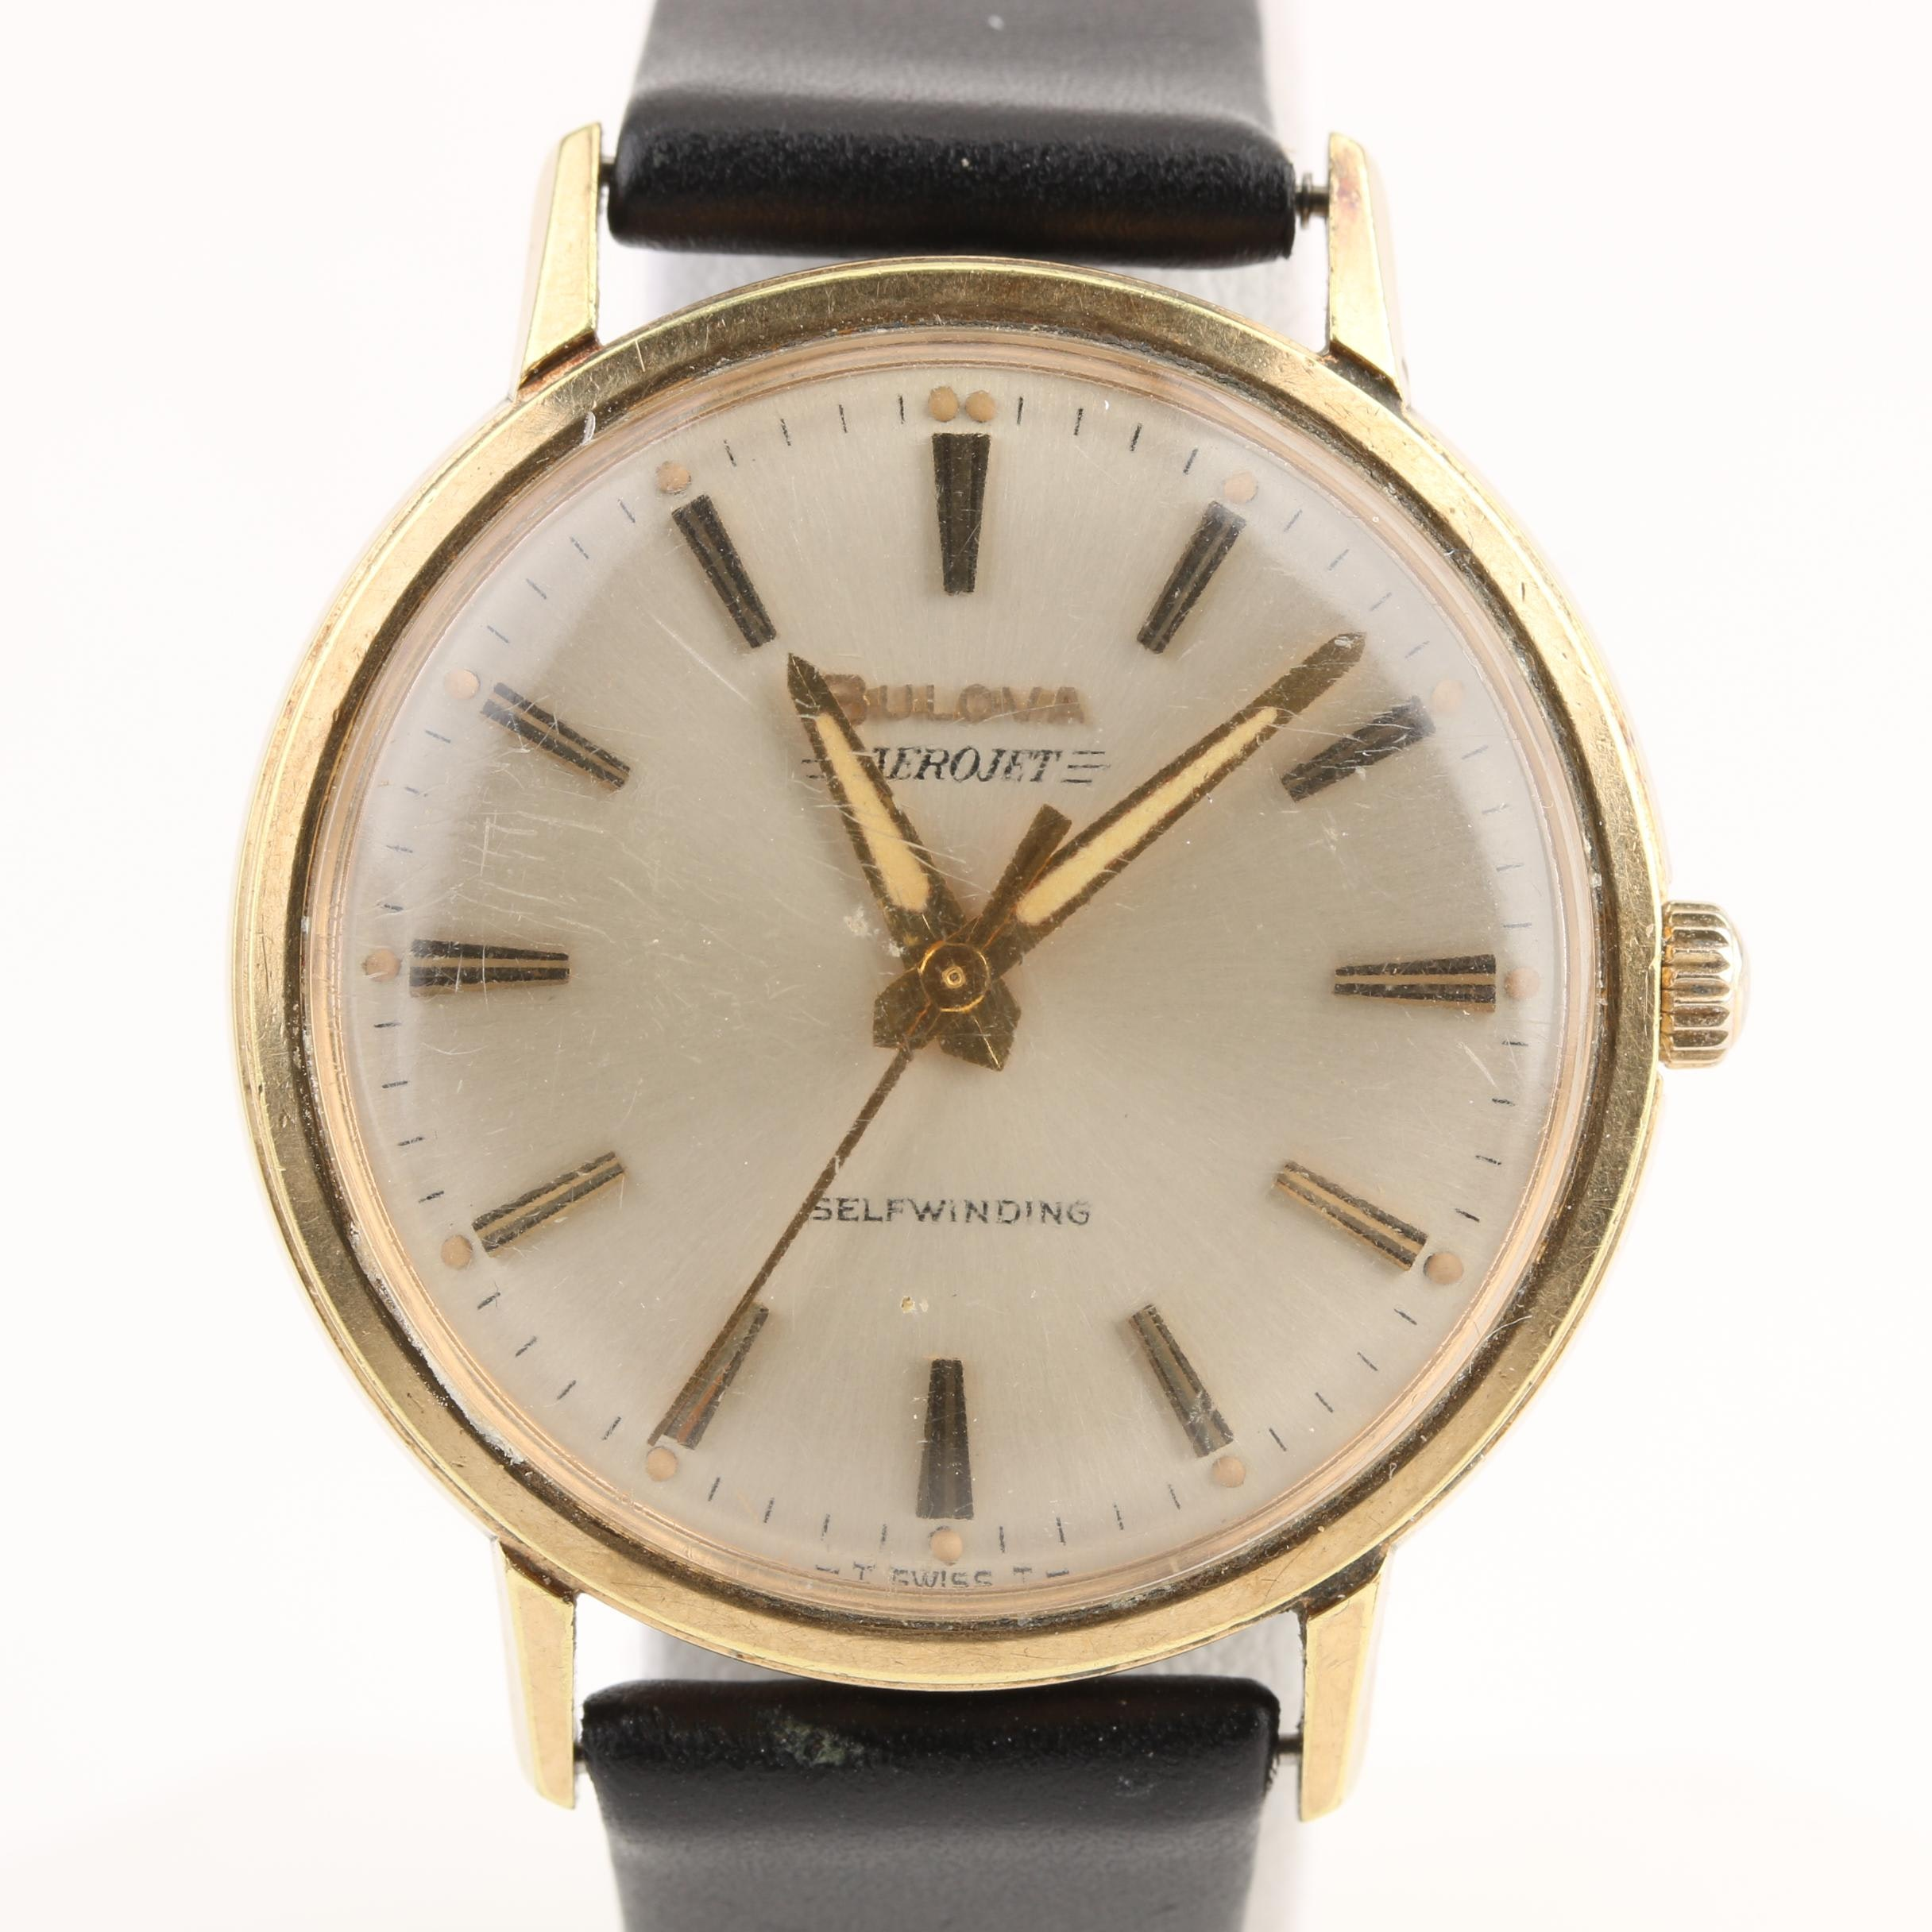 Bulova Aerojet Gold Plate and Stainless Steel Wristwatch